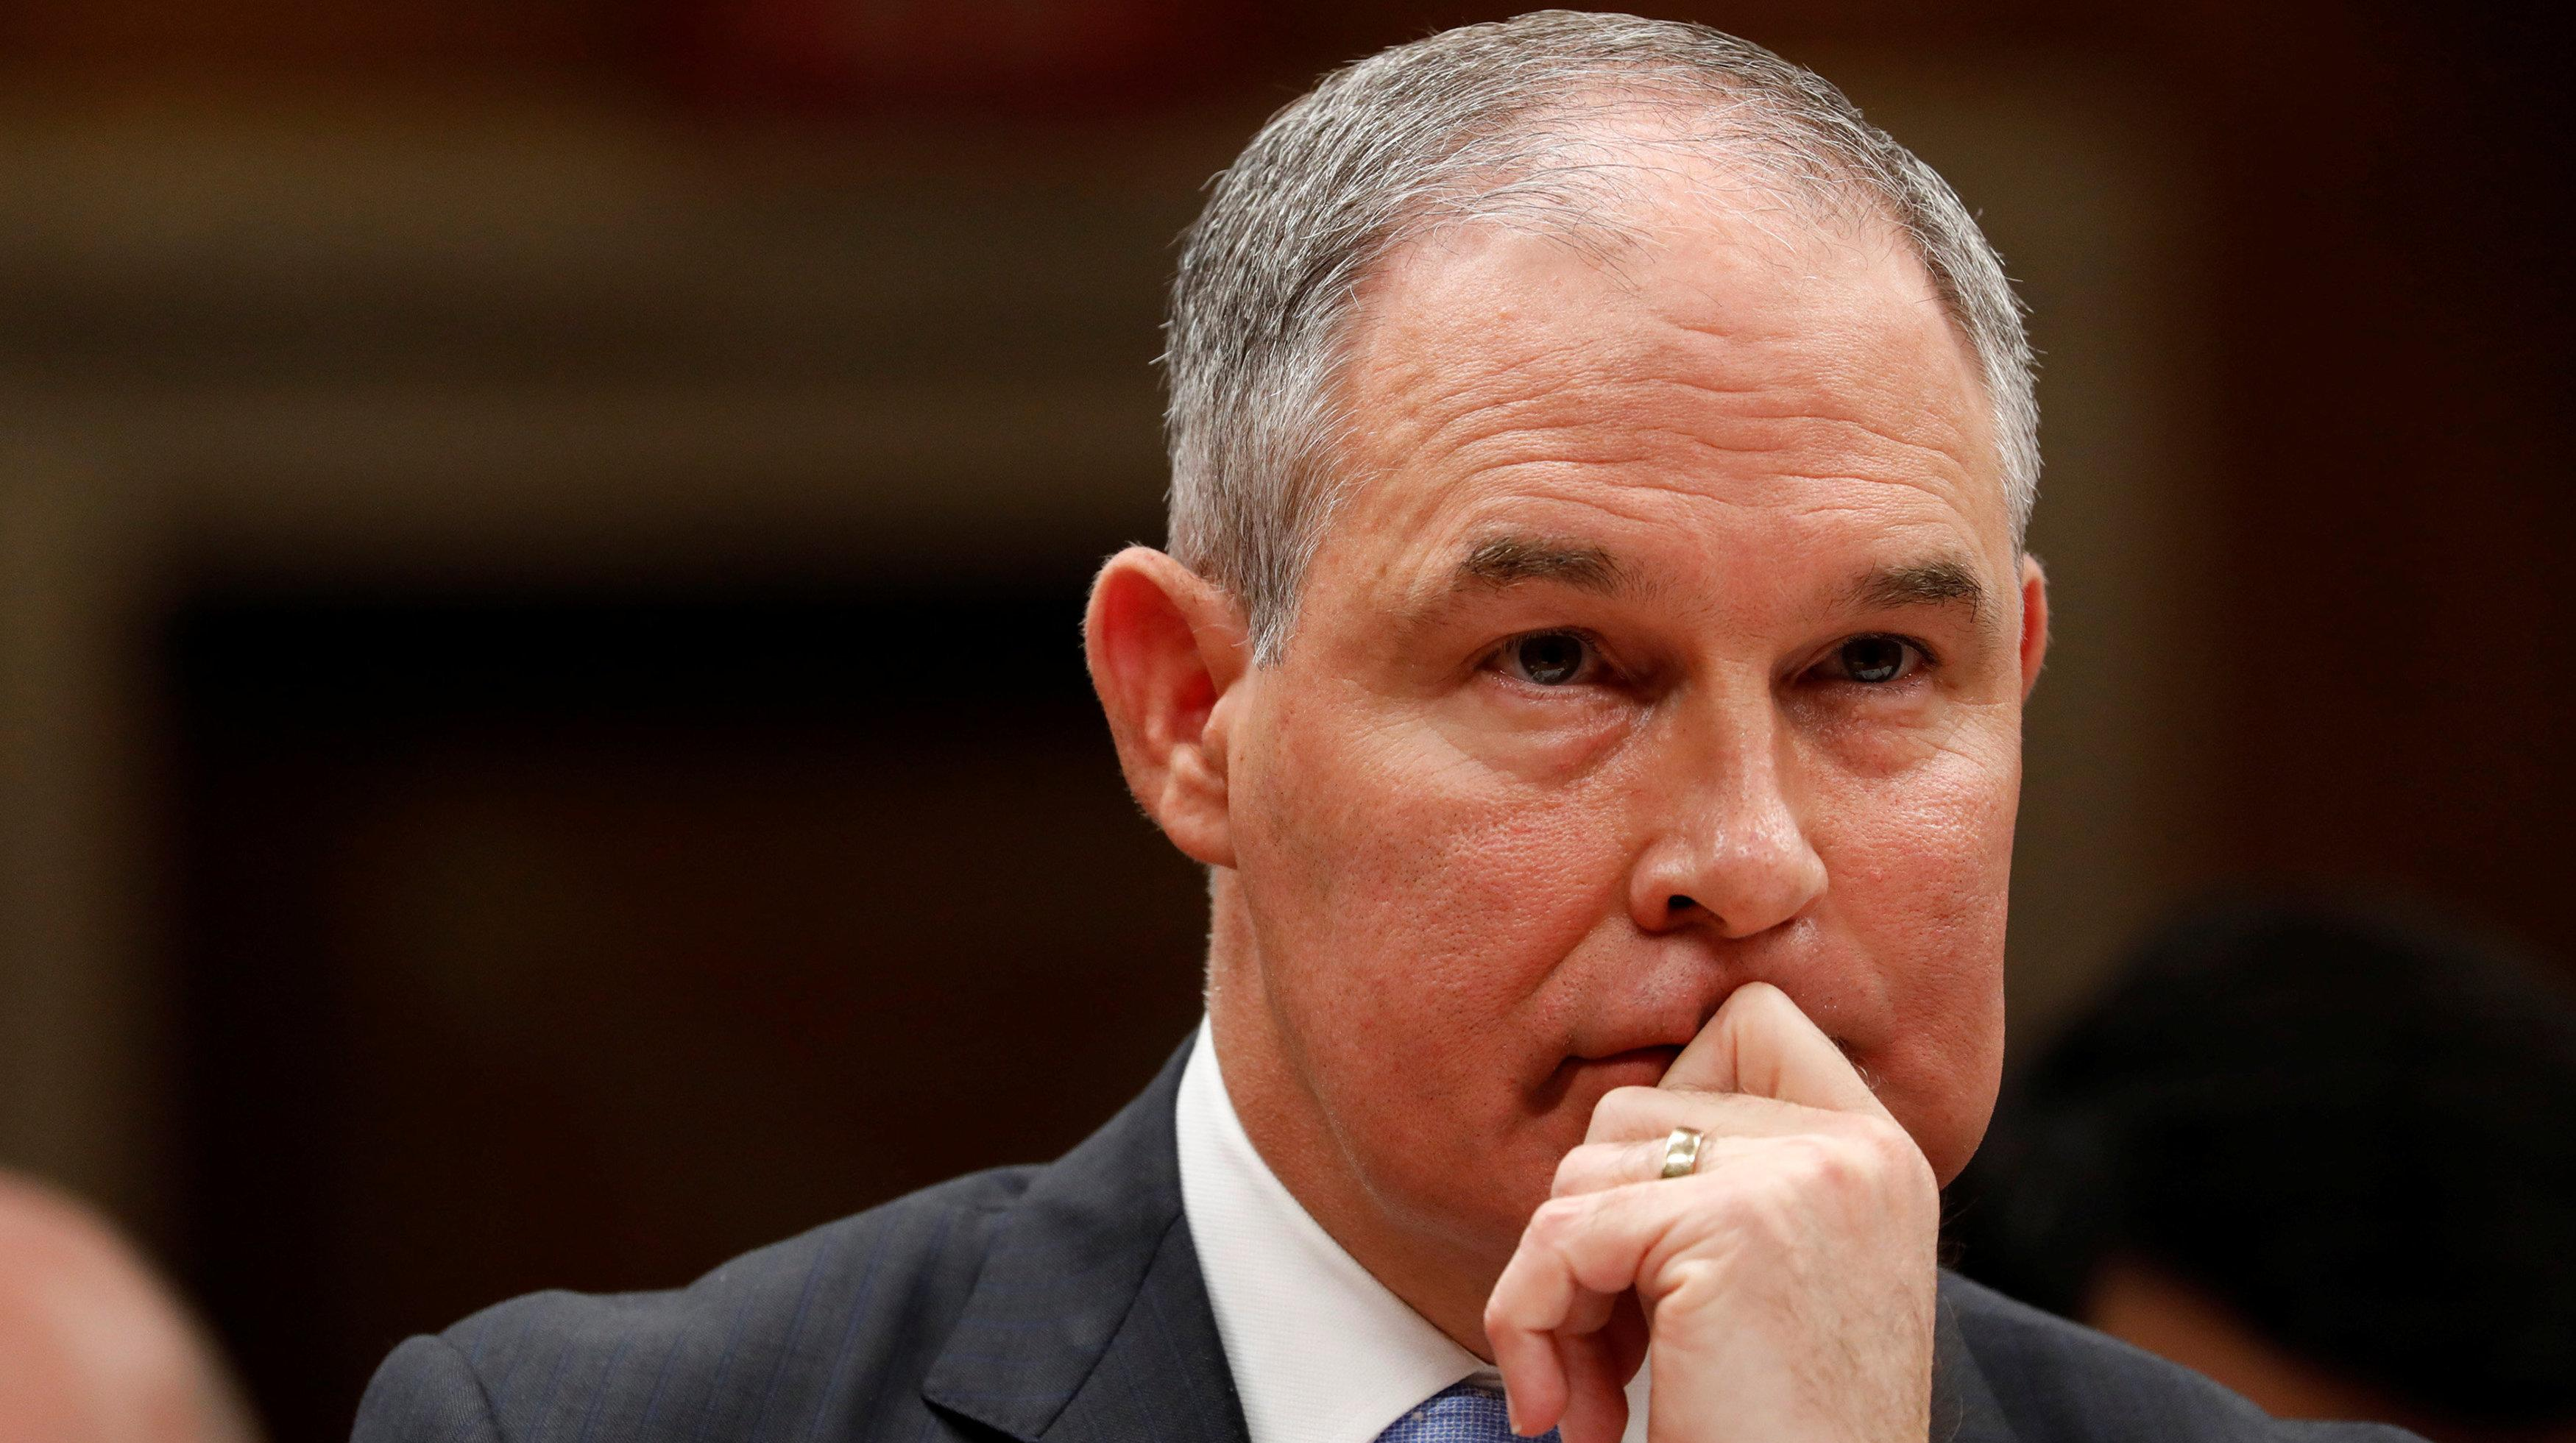 EPA's Pruitt Suggests Global Warming May Not Be A 'Bad Thing' For Humans